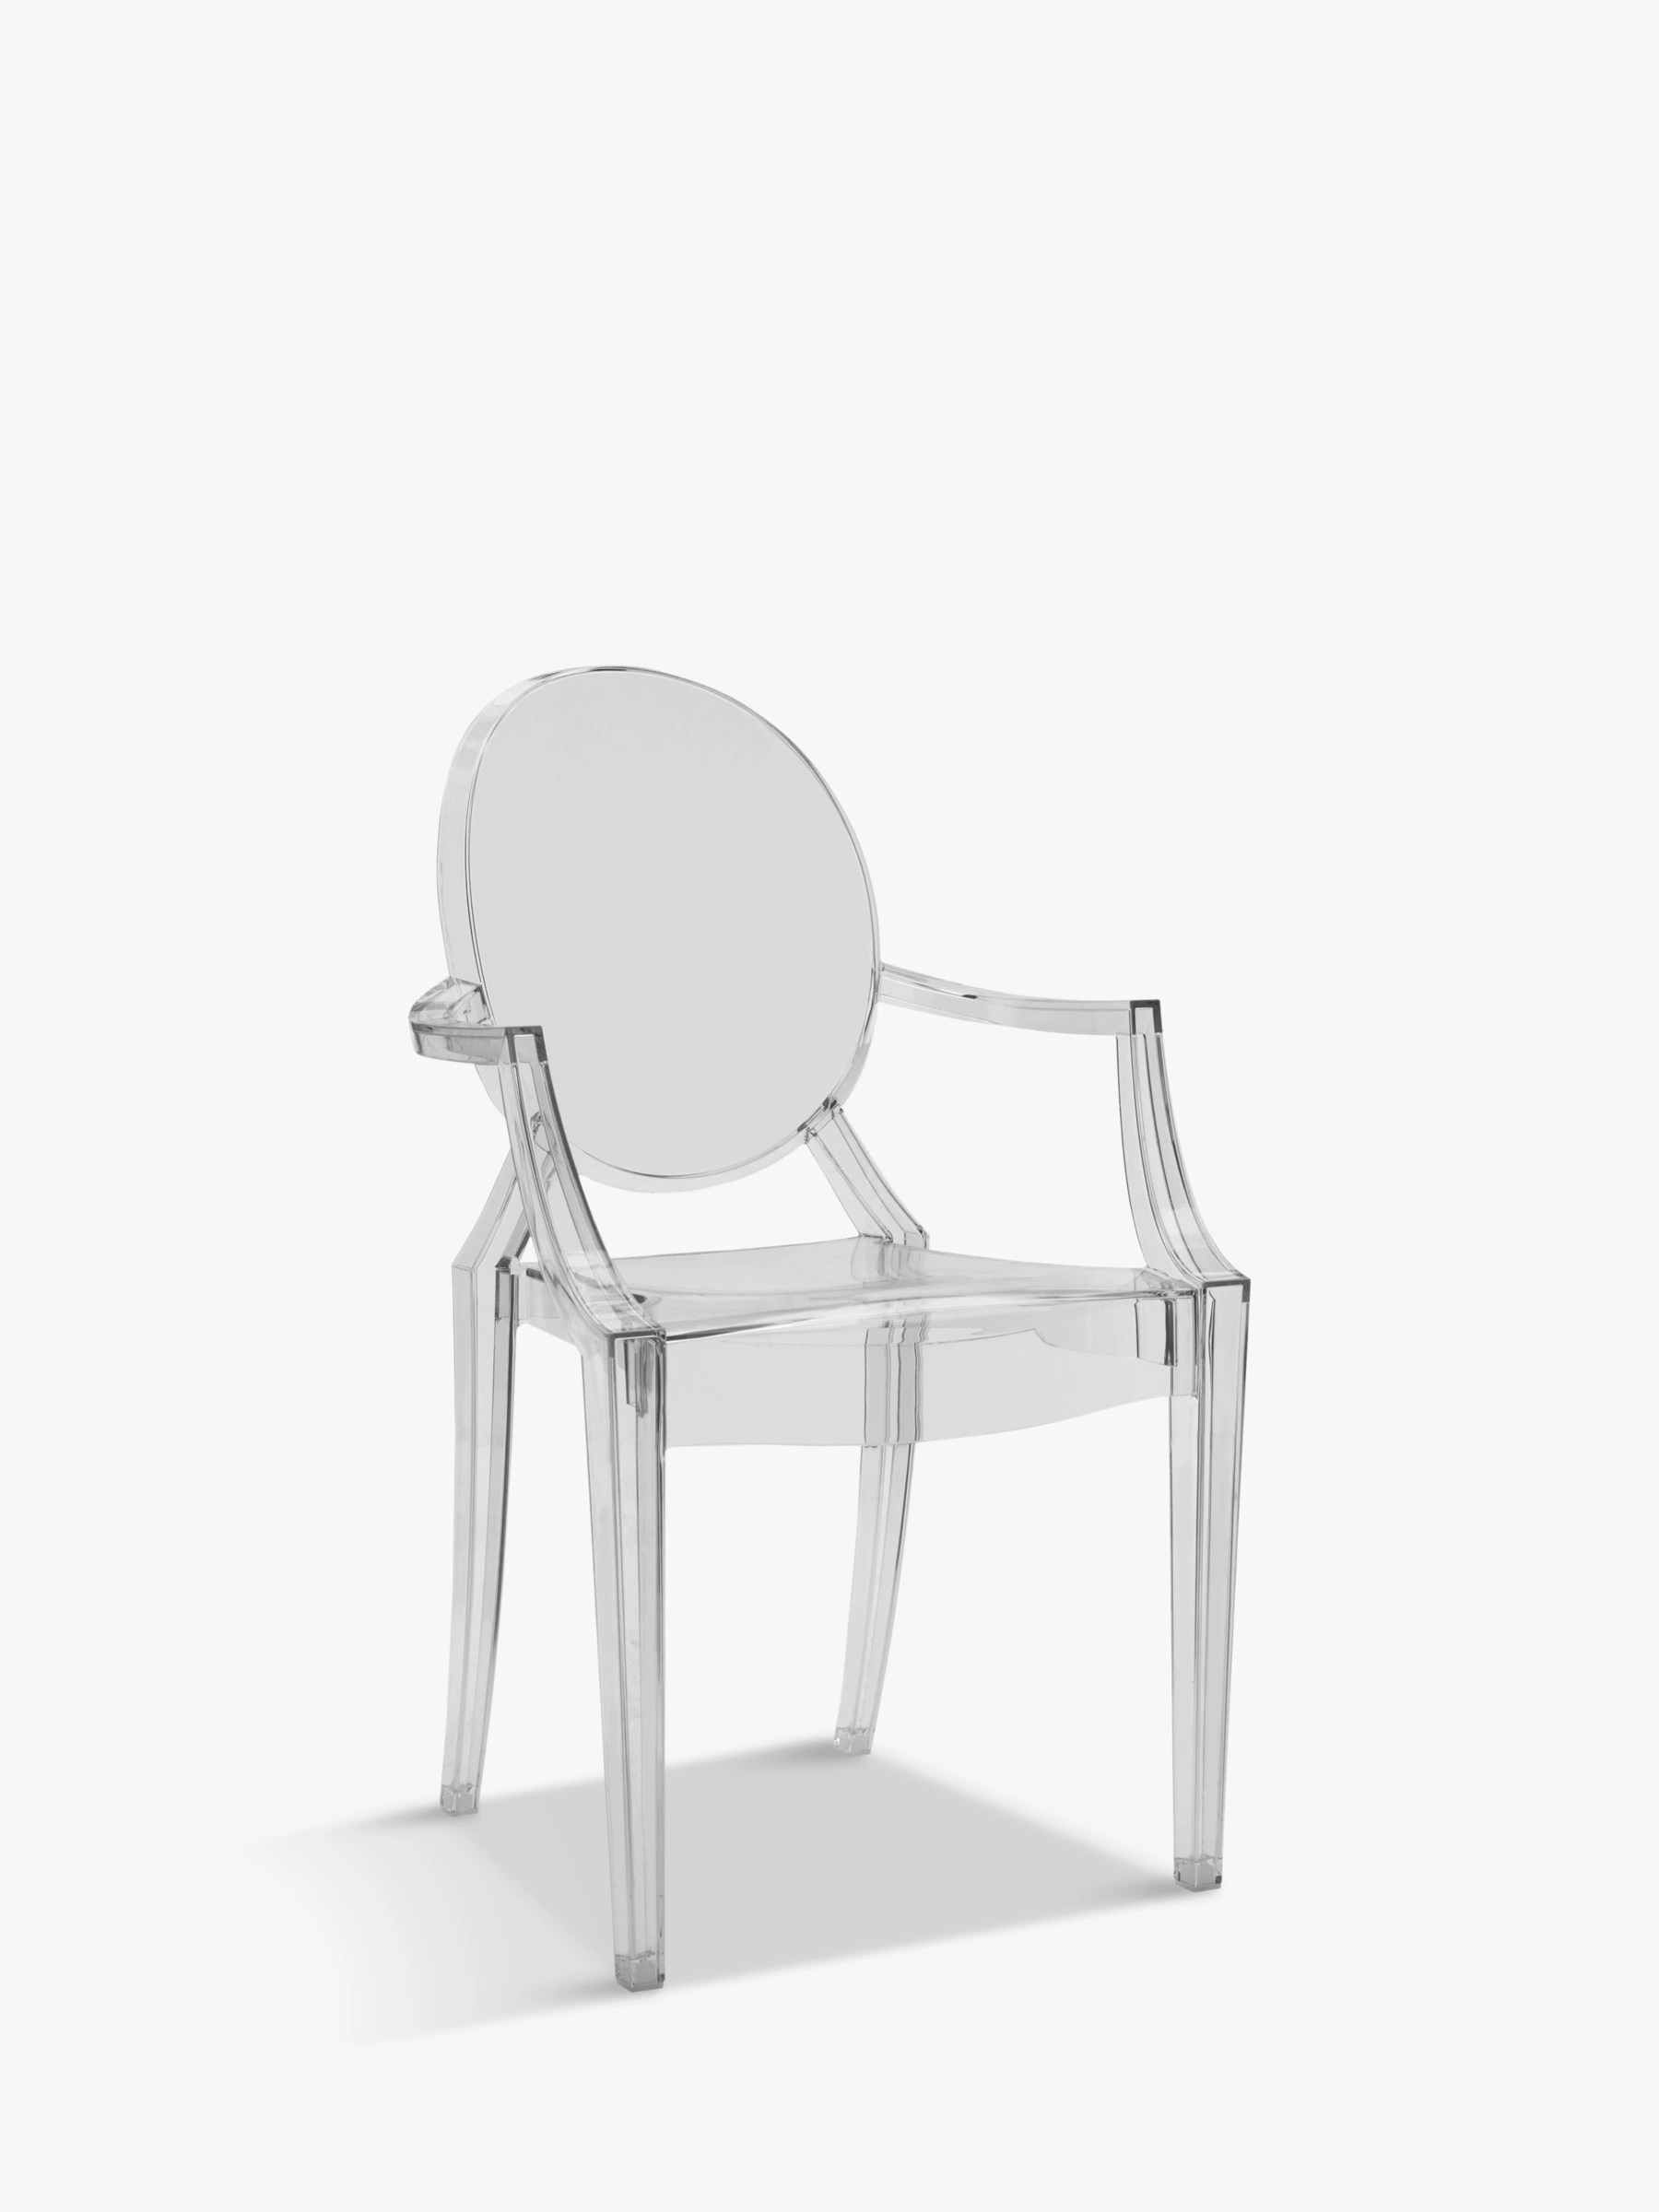 Ghost Chairs Philippe Starck For Kartell Louis Ghost Chair At John Lewis